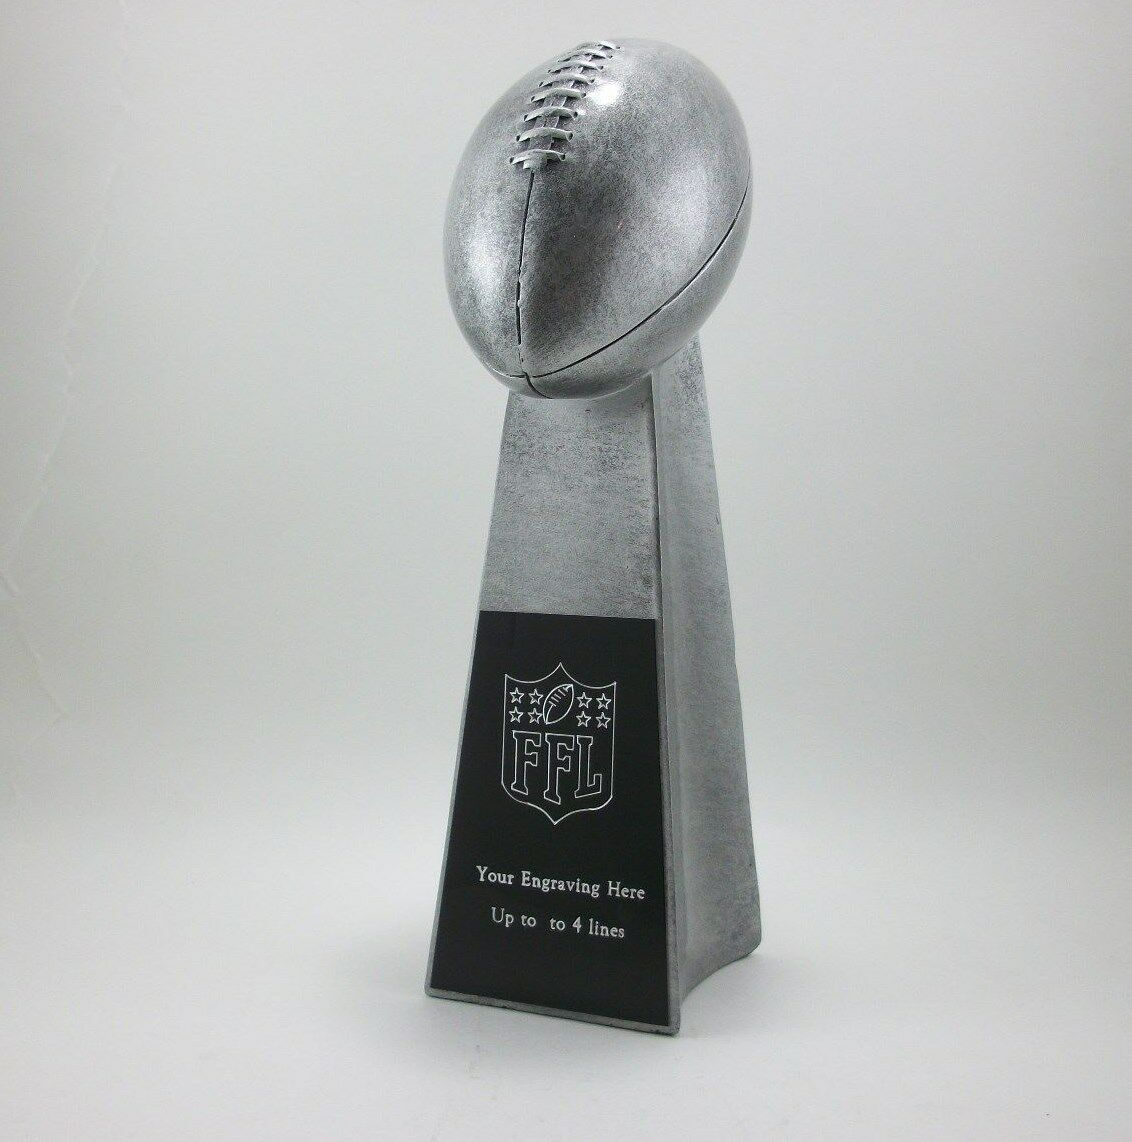 14  Fantasy Football Lombardi Trophy Award. Free Engraving.